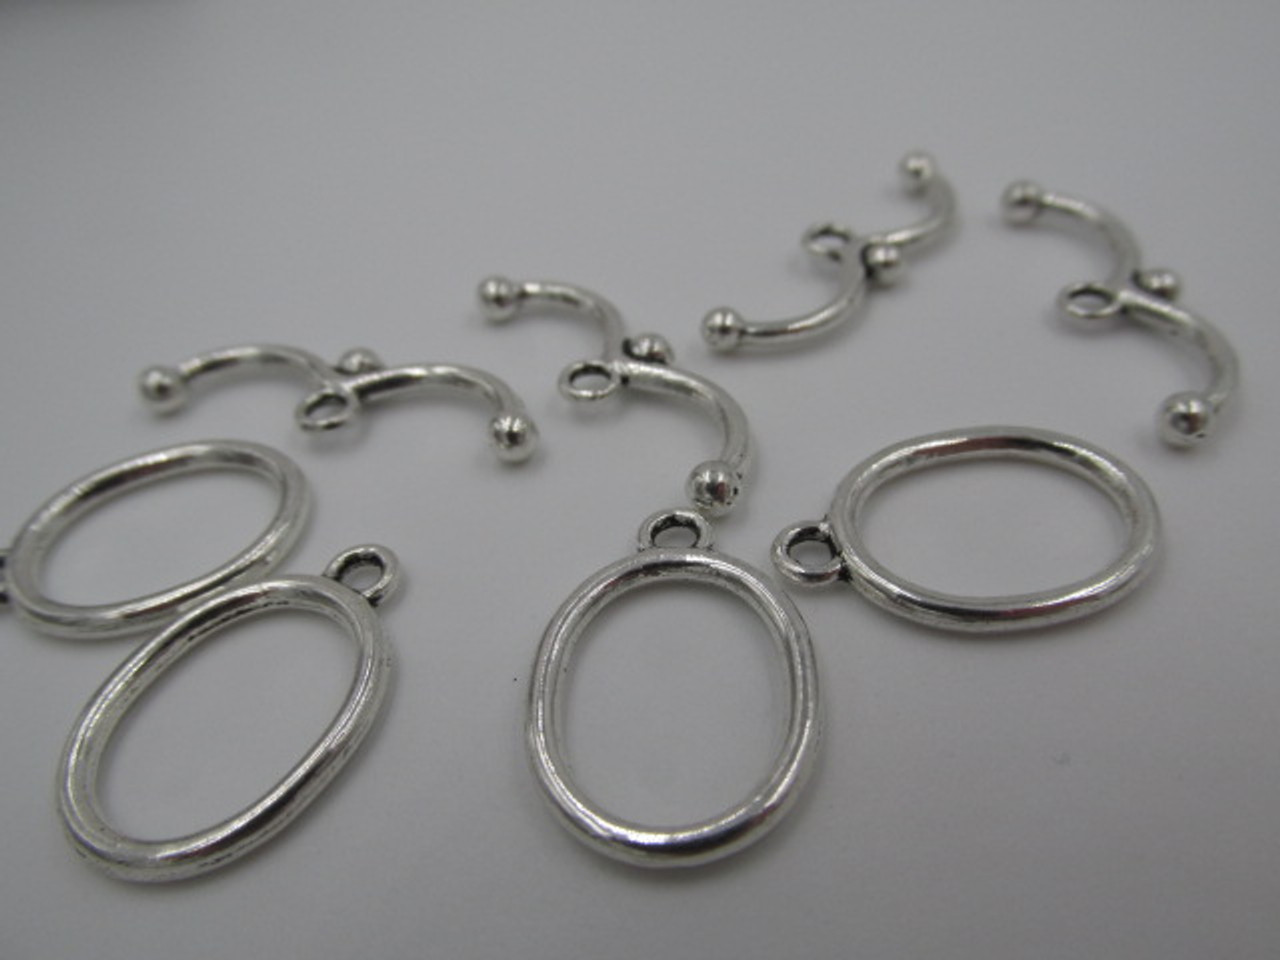 20x13mm Oval Silver Plated Toggle (4 Sets)